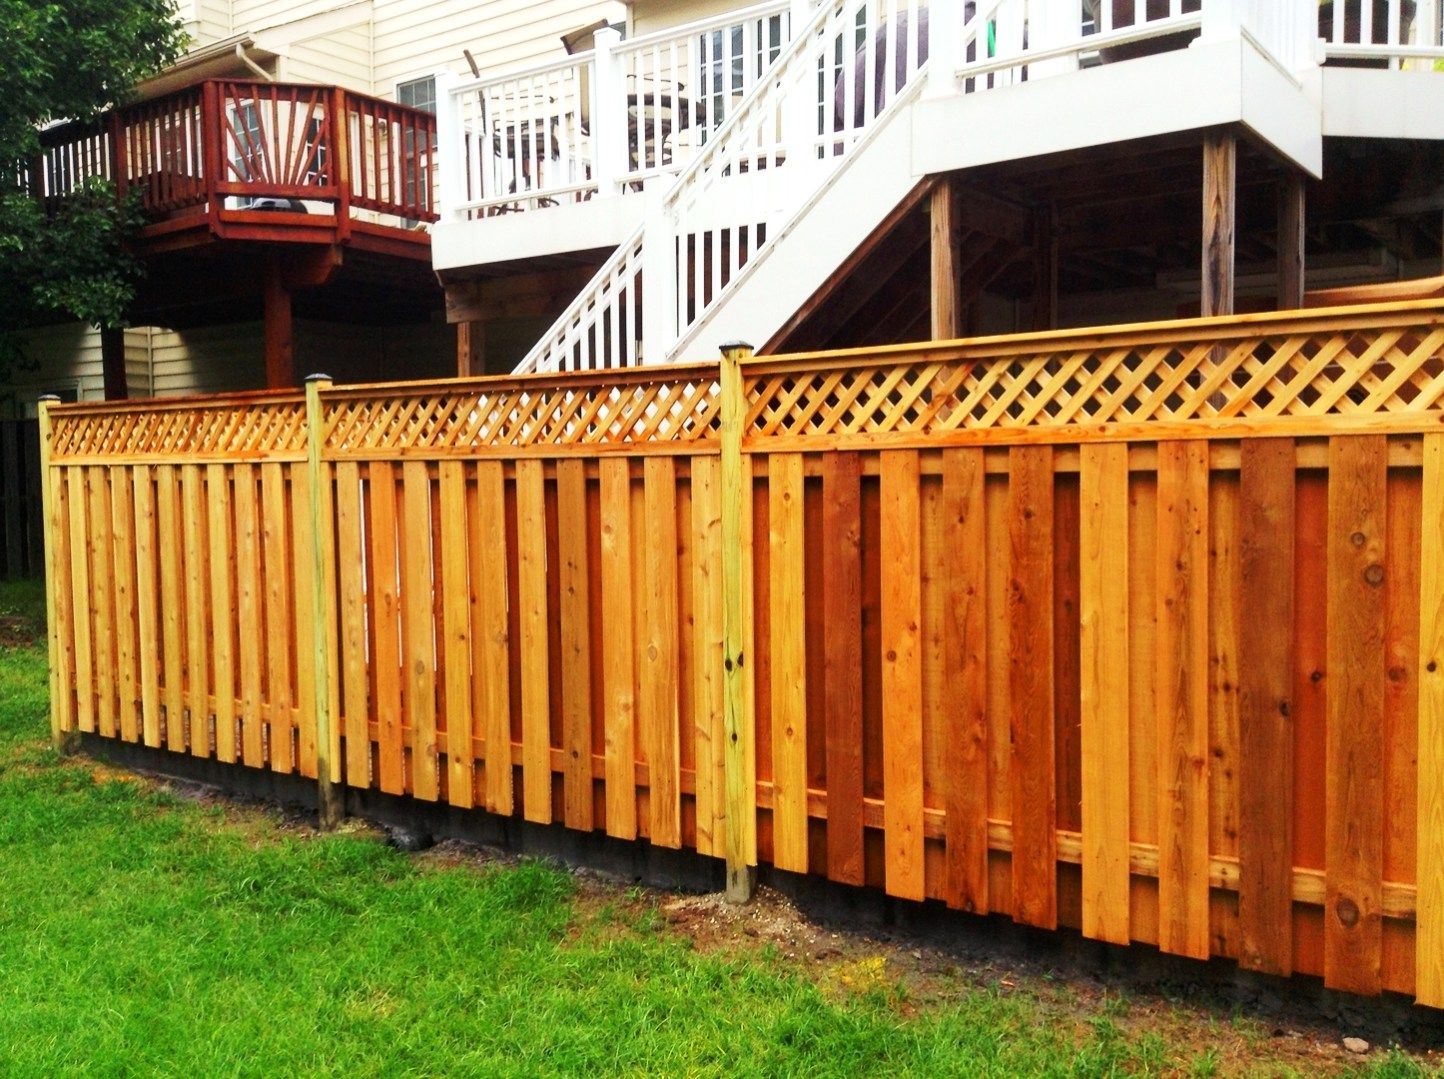 Prissy Dogs Outdoor Fence Designs Wood Privacy Privacy Large Privacy Wood Fencedesign Ideas Wood Privacy Privacy Large Privacy Wood Backyard Fence Designs